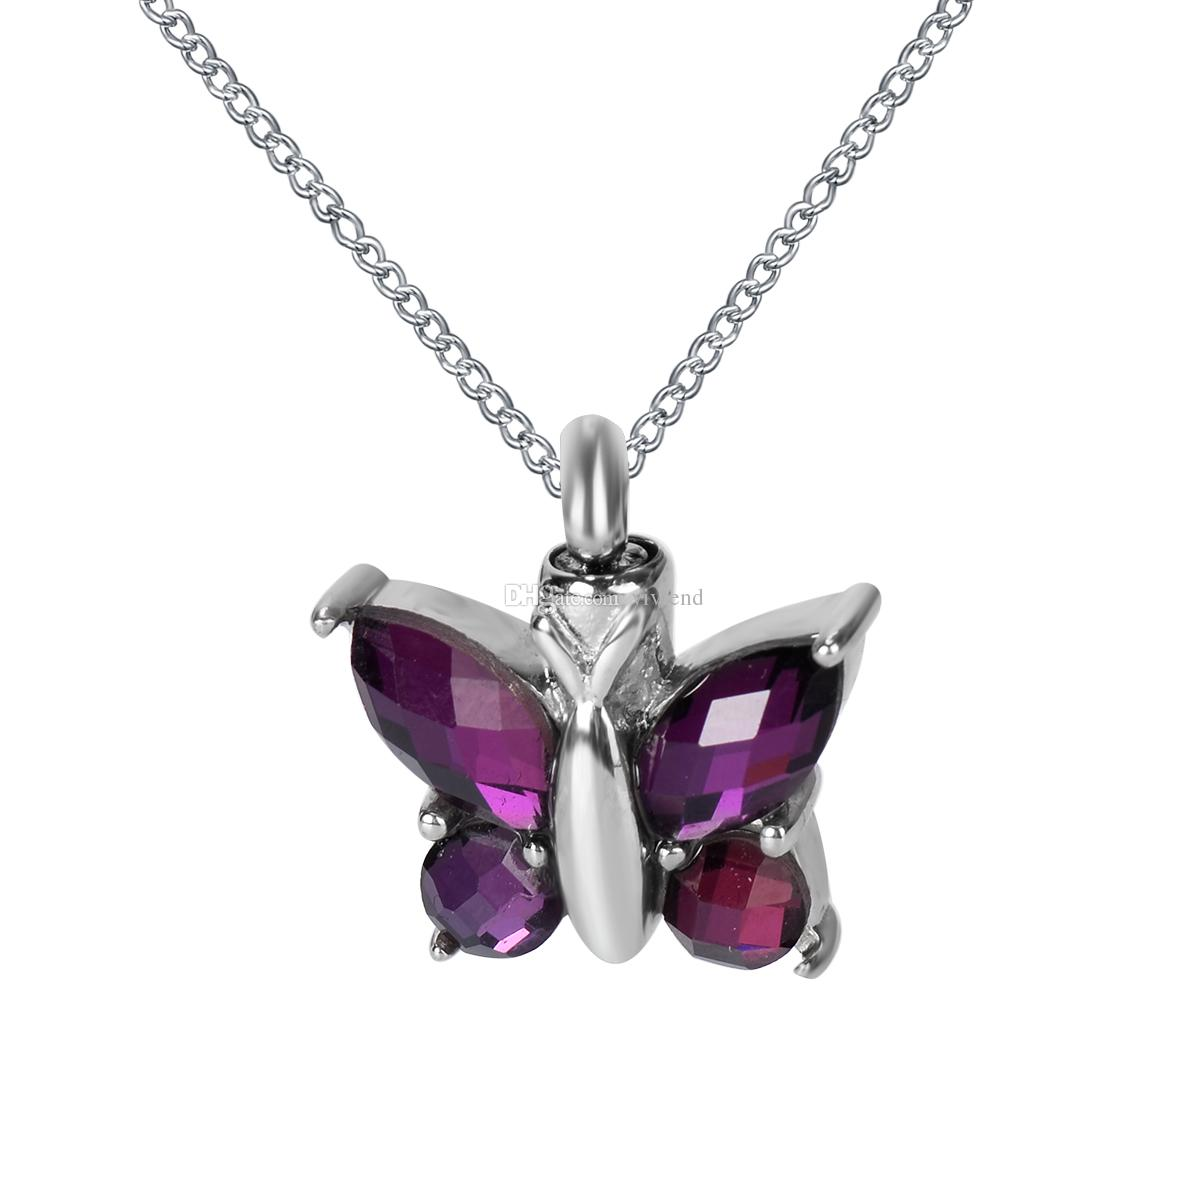 Urn Necklace Purple Zircon Butterfly Memorial Ash Keepsake Stainless Steel with Gift Bag Funnel and Chain